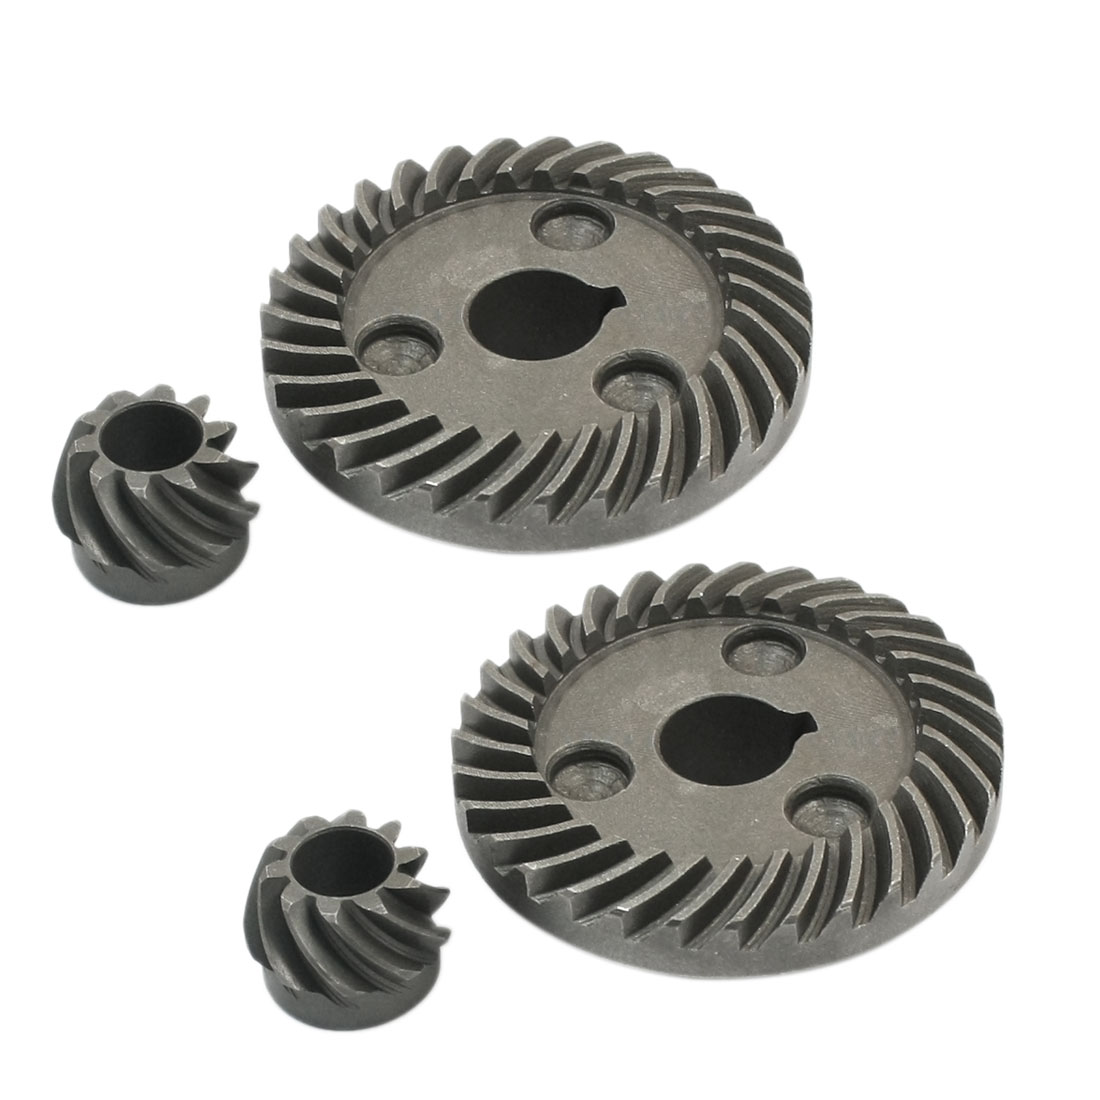 Replacement Spiral Bevel Gear 2 Set for Hitachi 100 Angle Grinder